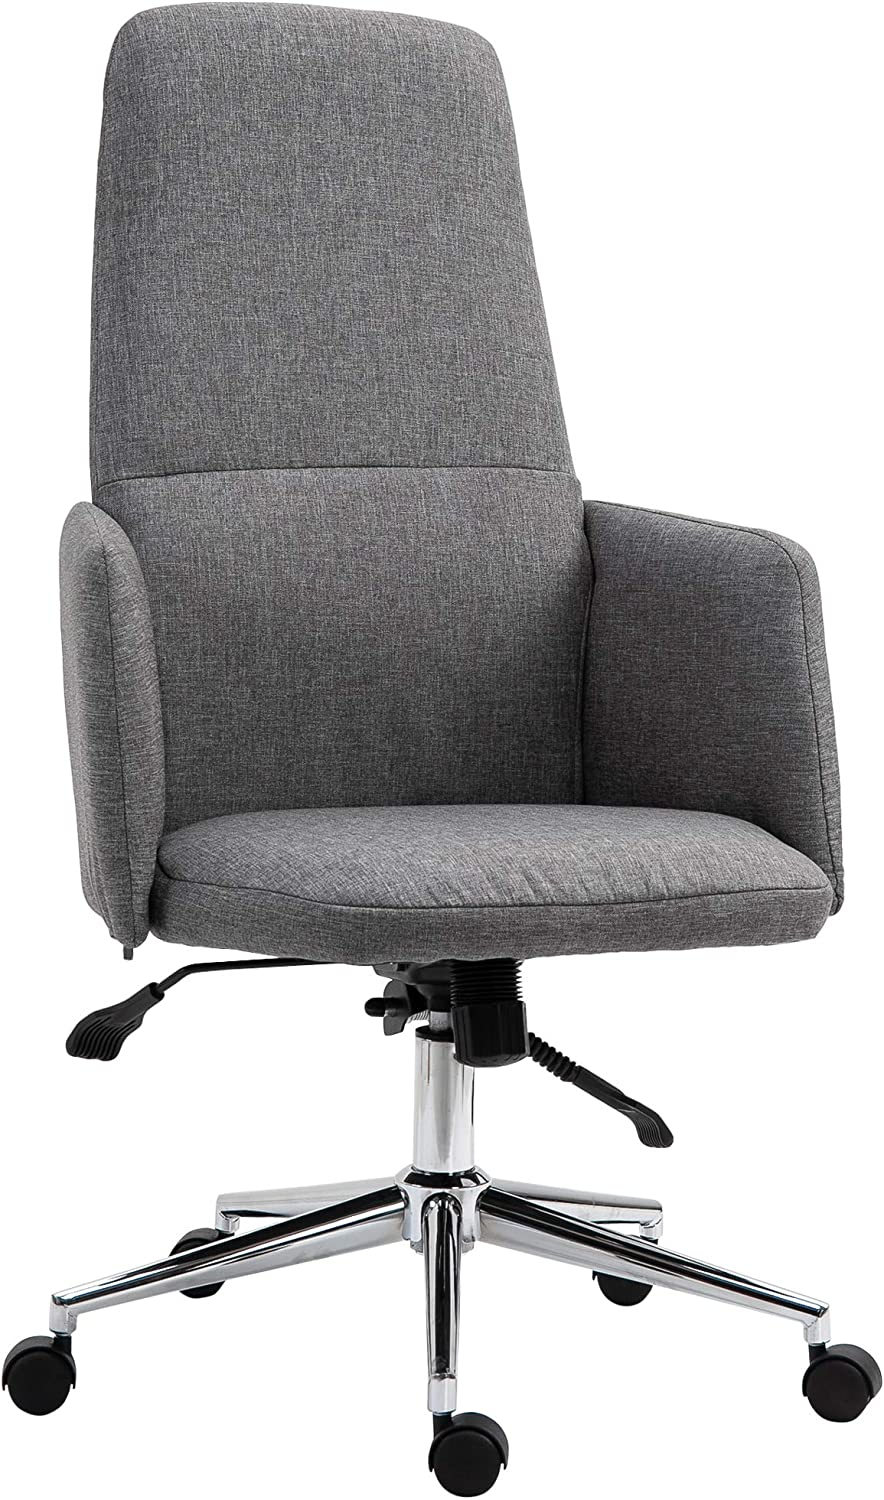 Vinsetto SOHO Style High Back Office Computer Chair with Breathable Fabric, Padded Armrest, and Swivel Wheels, Grey